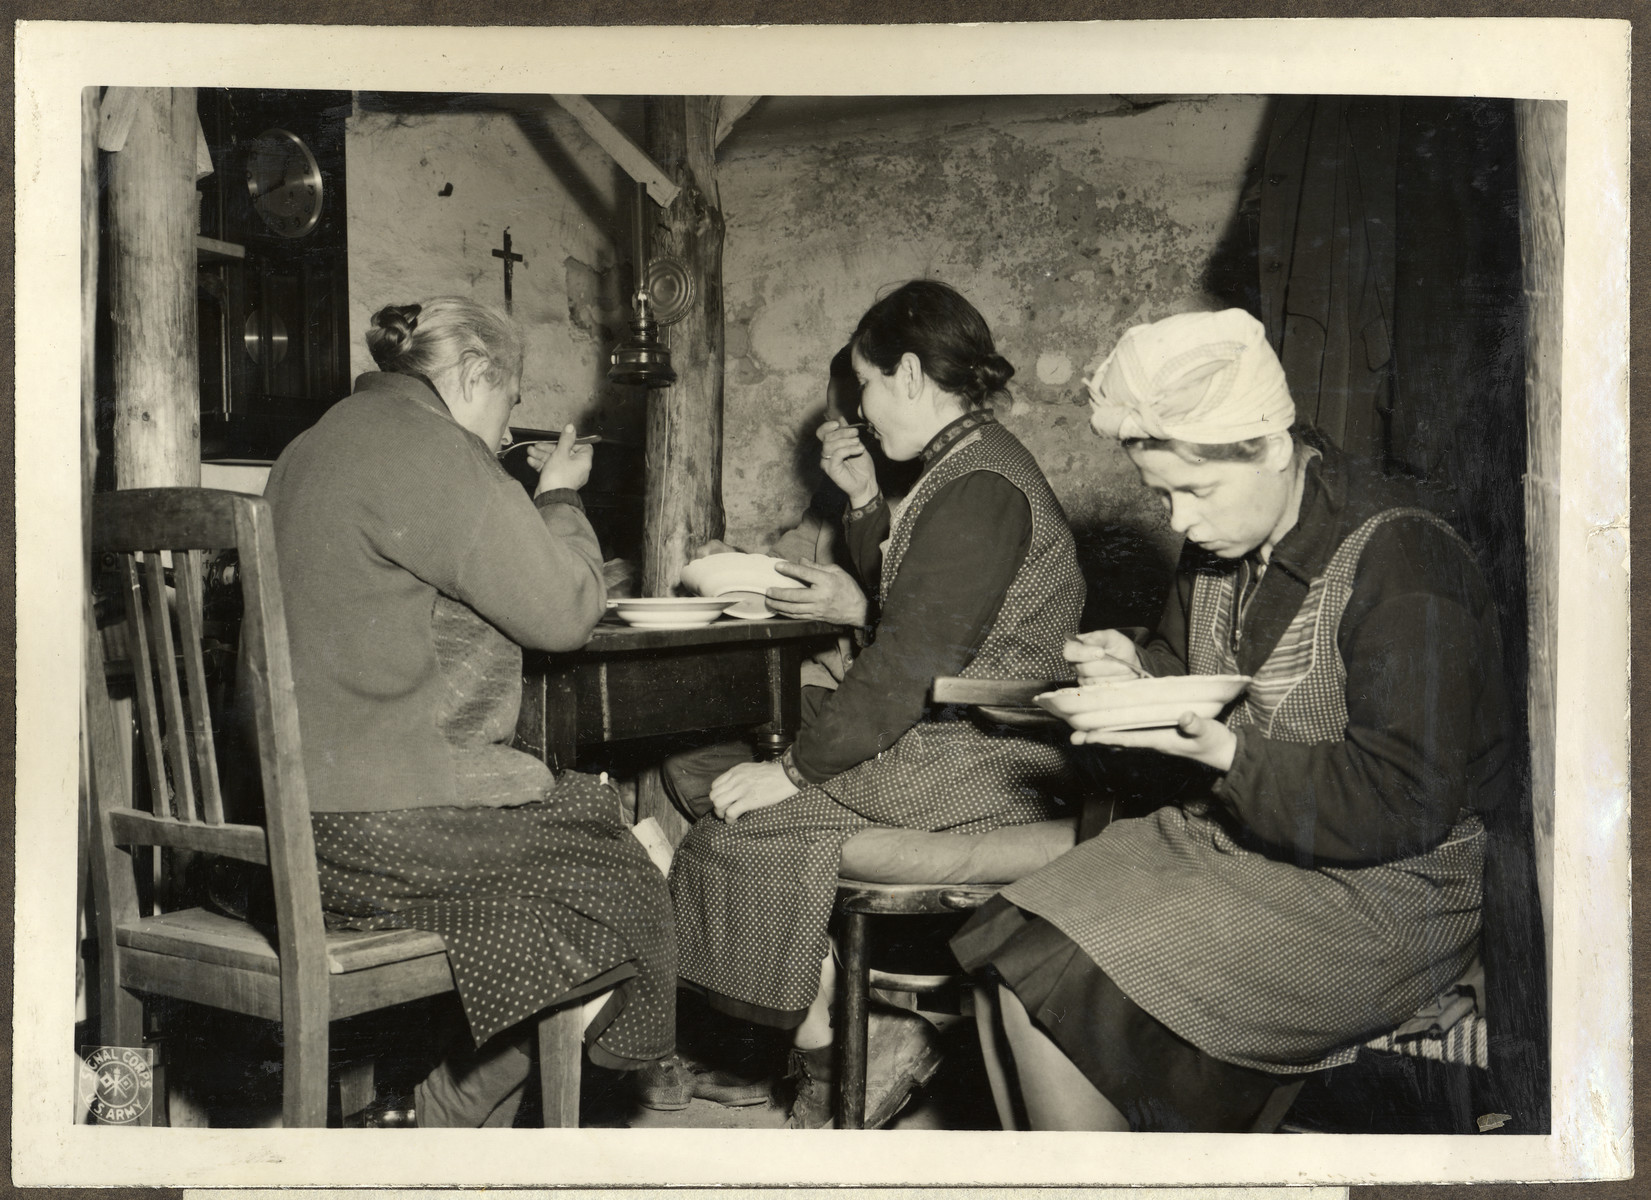 Two German families eat lunch in their bunker in the celler of their destroyed house of Freiedrichsstrasse 15-16, Wurselen. These families lived there for 5 weeks to escape the shelling of their town.